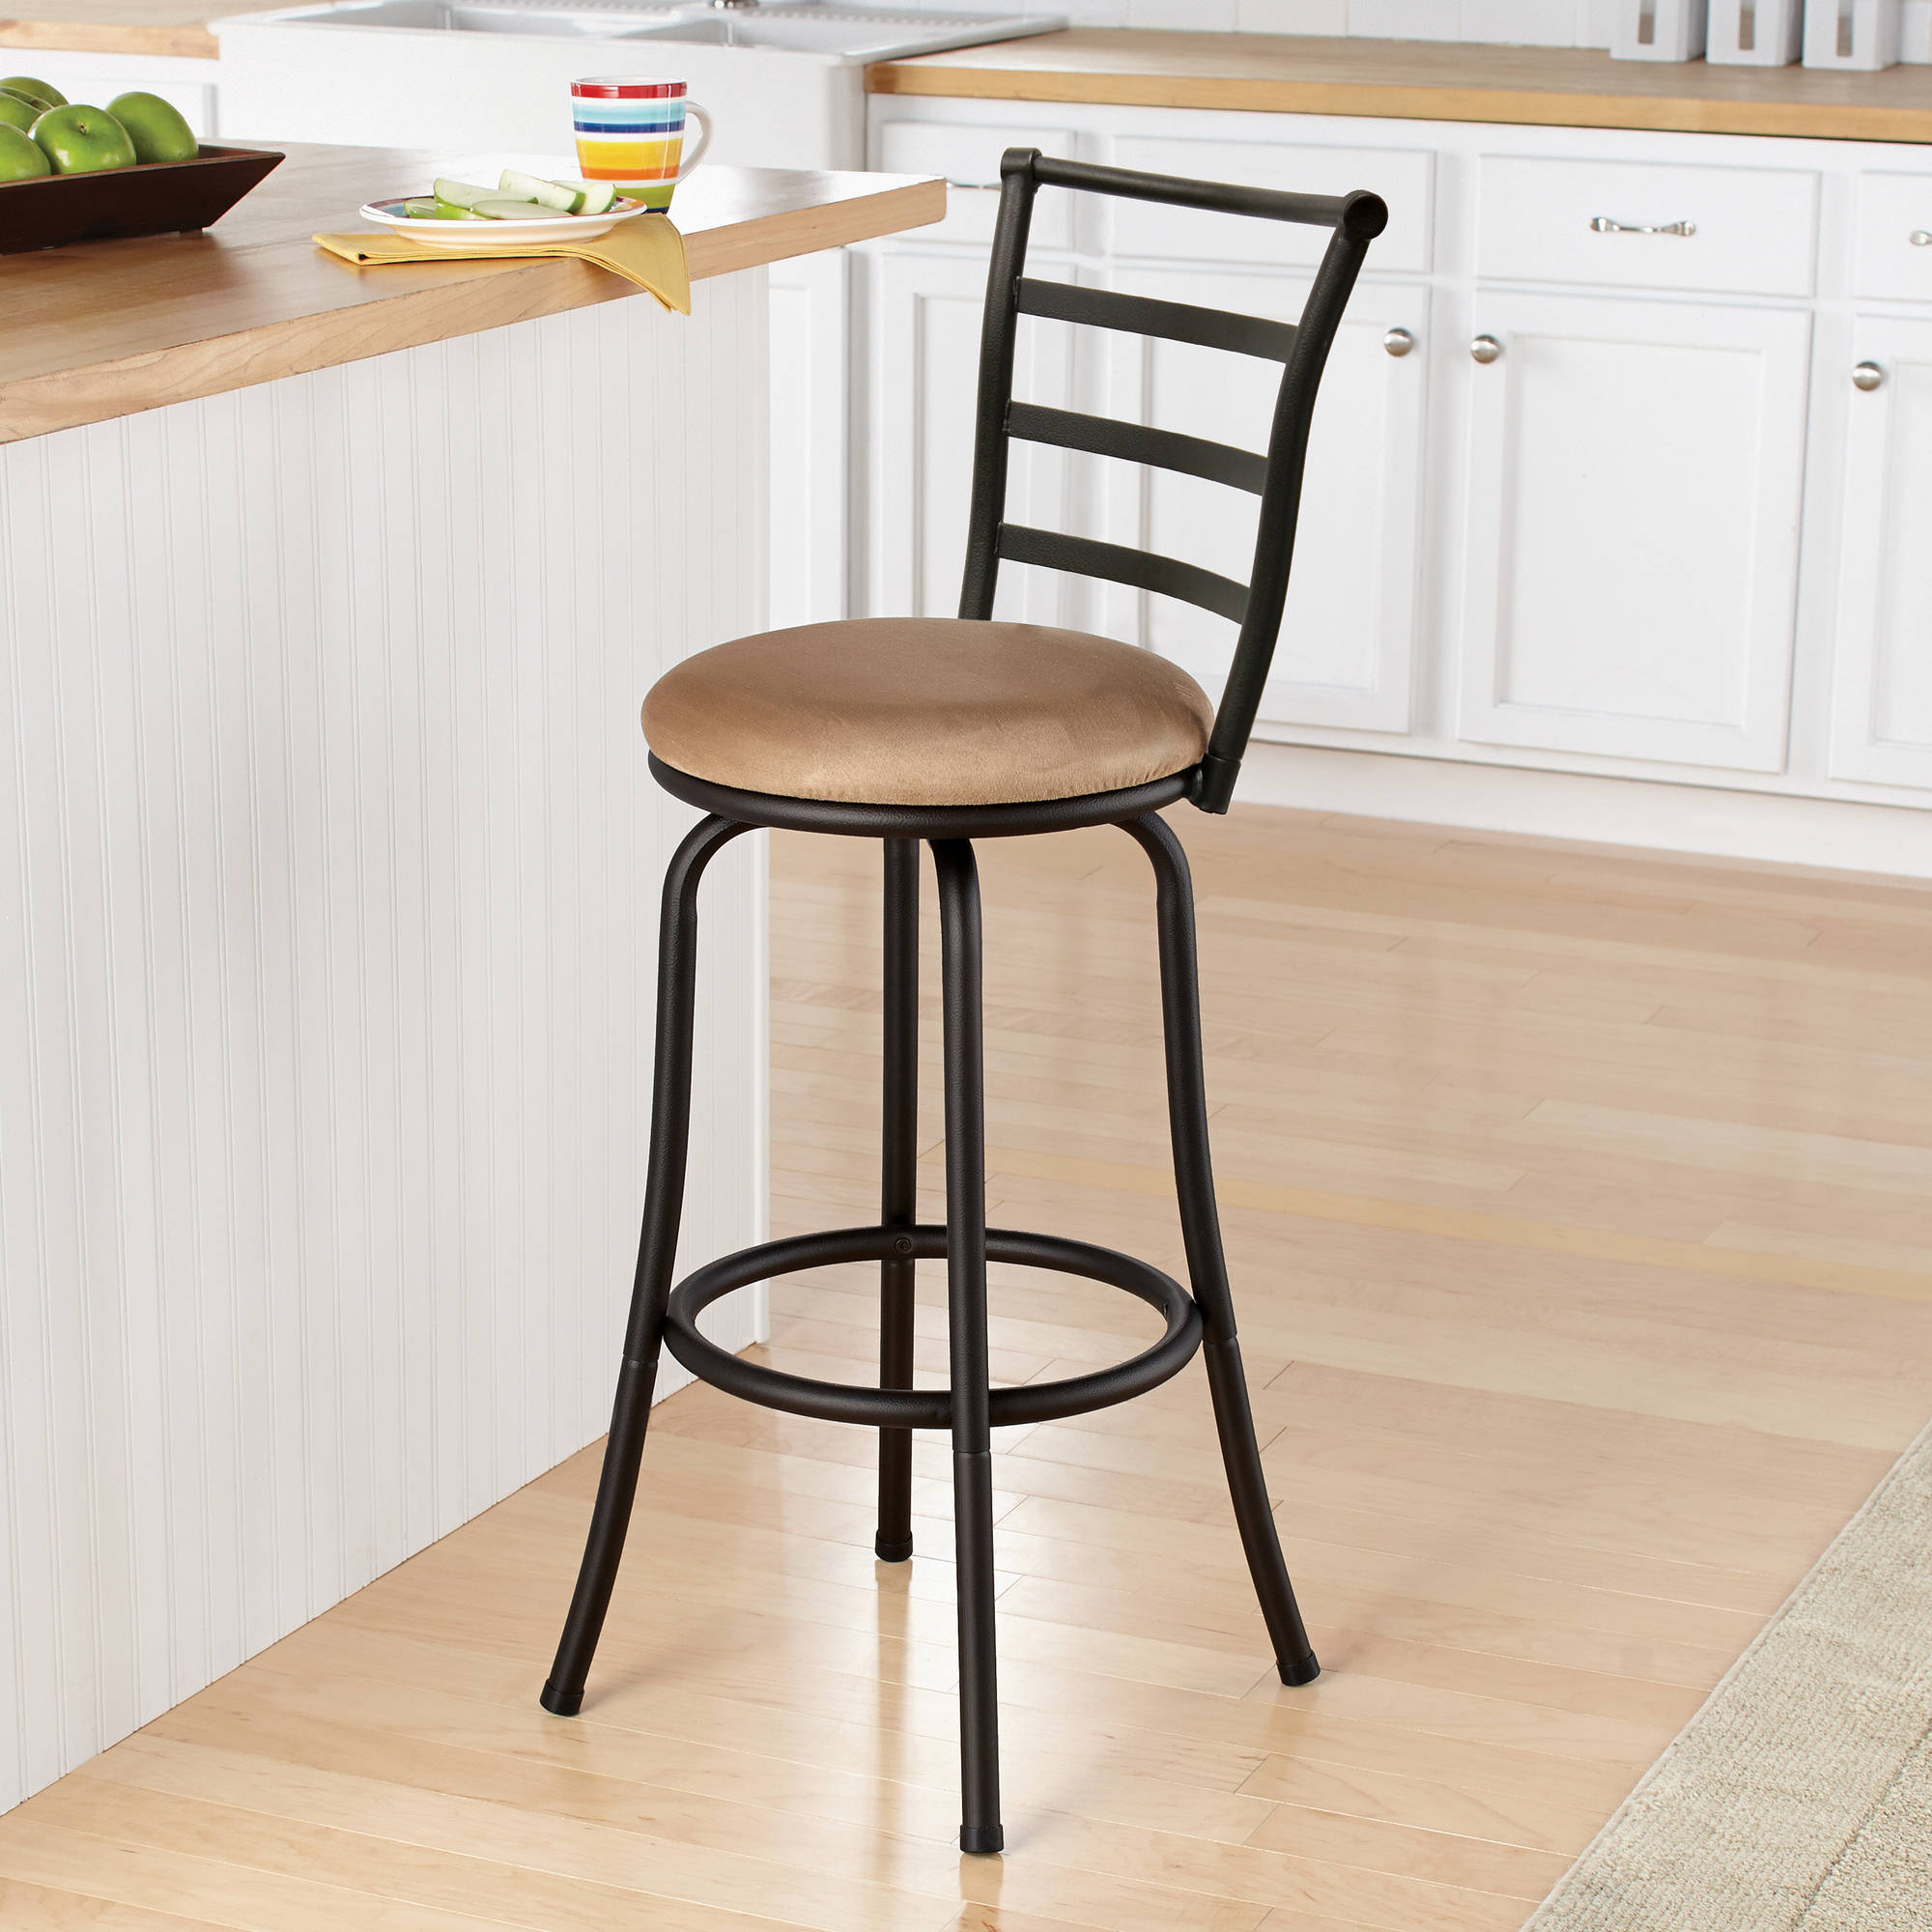 Mainstays 29 ladder back black barstool multiple colors walmart com